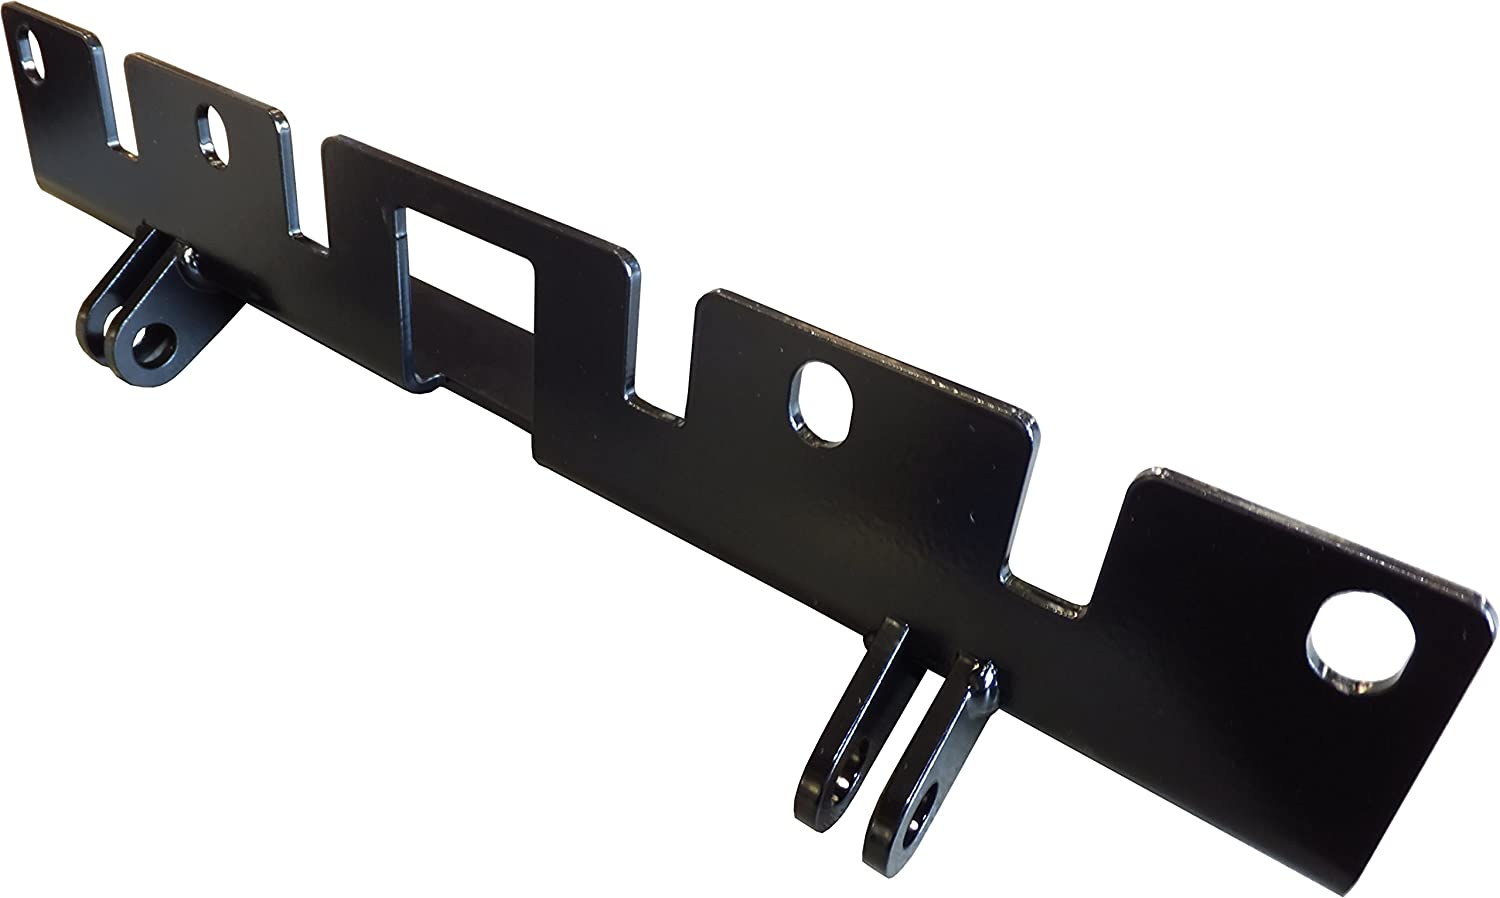 105420 Plow Mount KFI Products